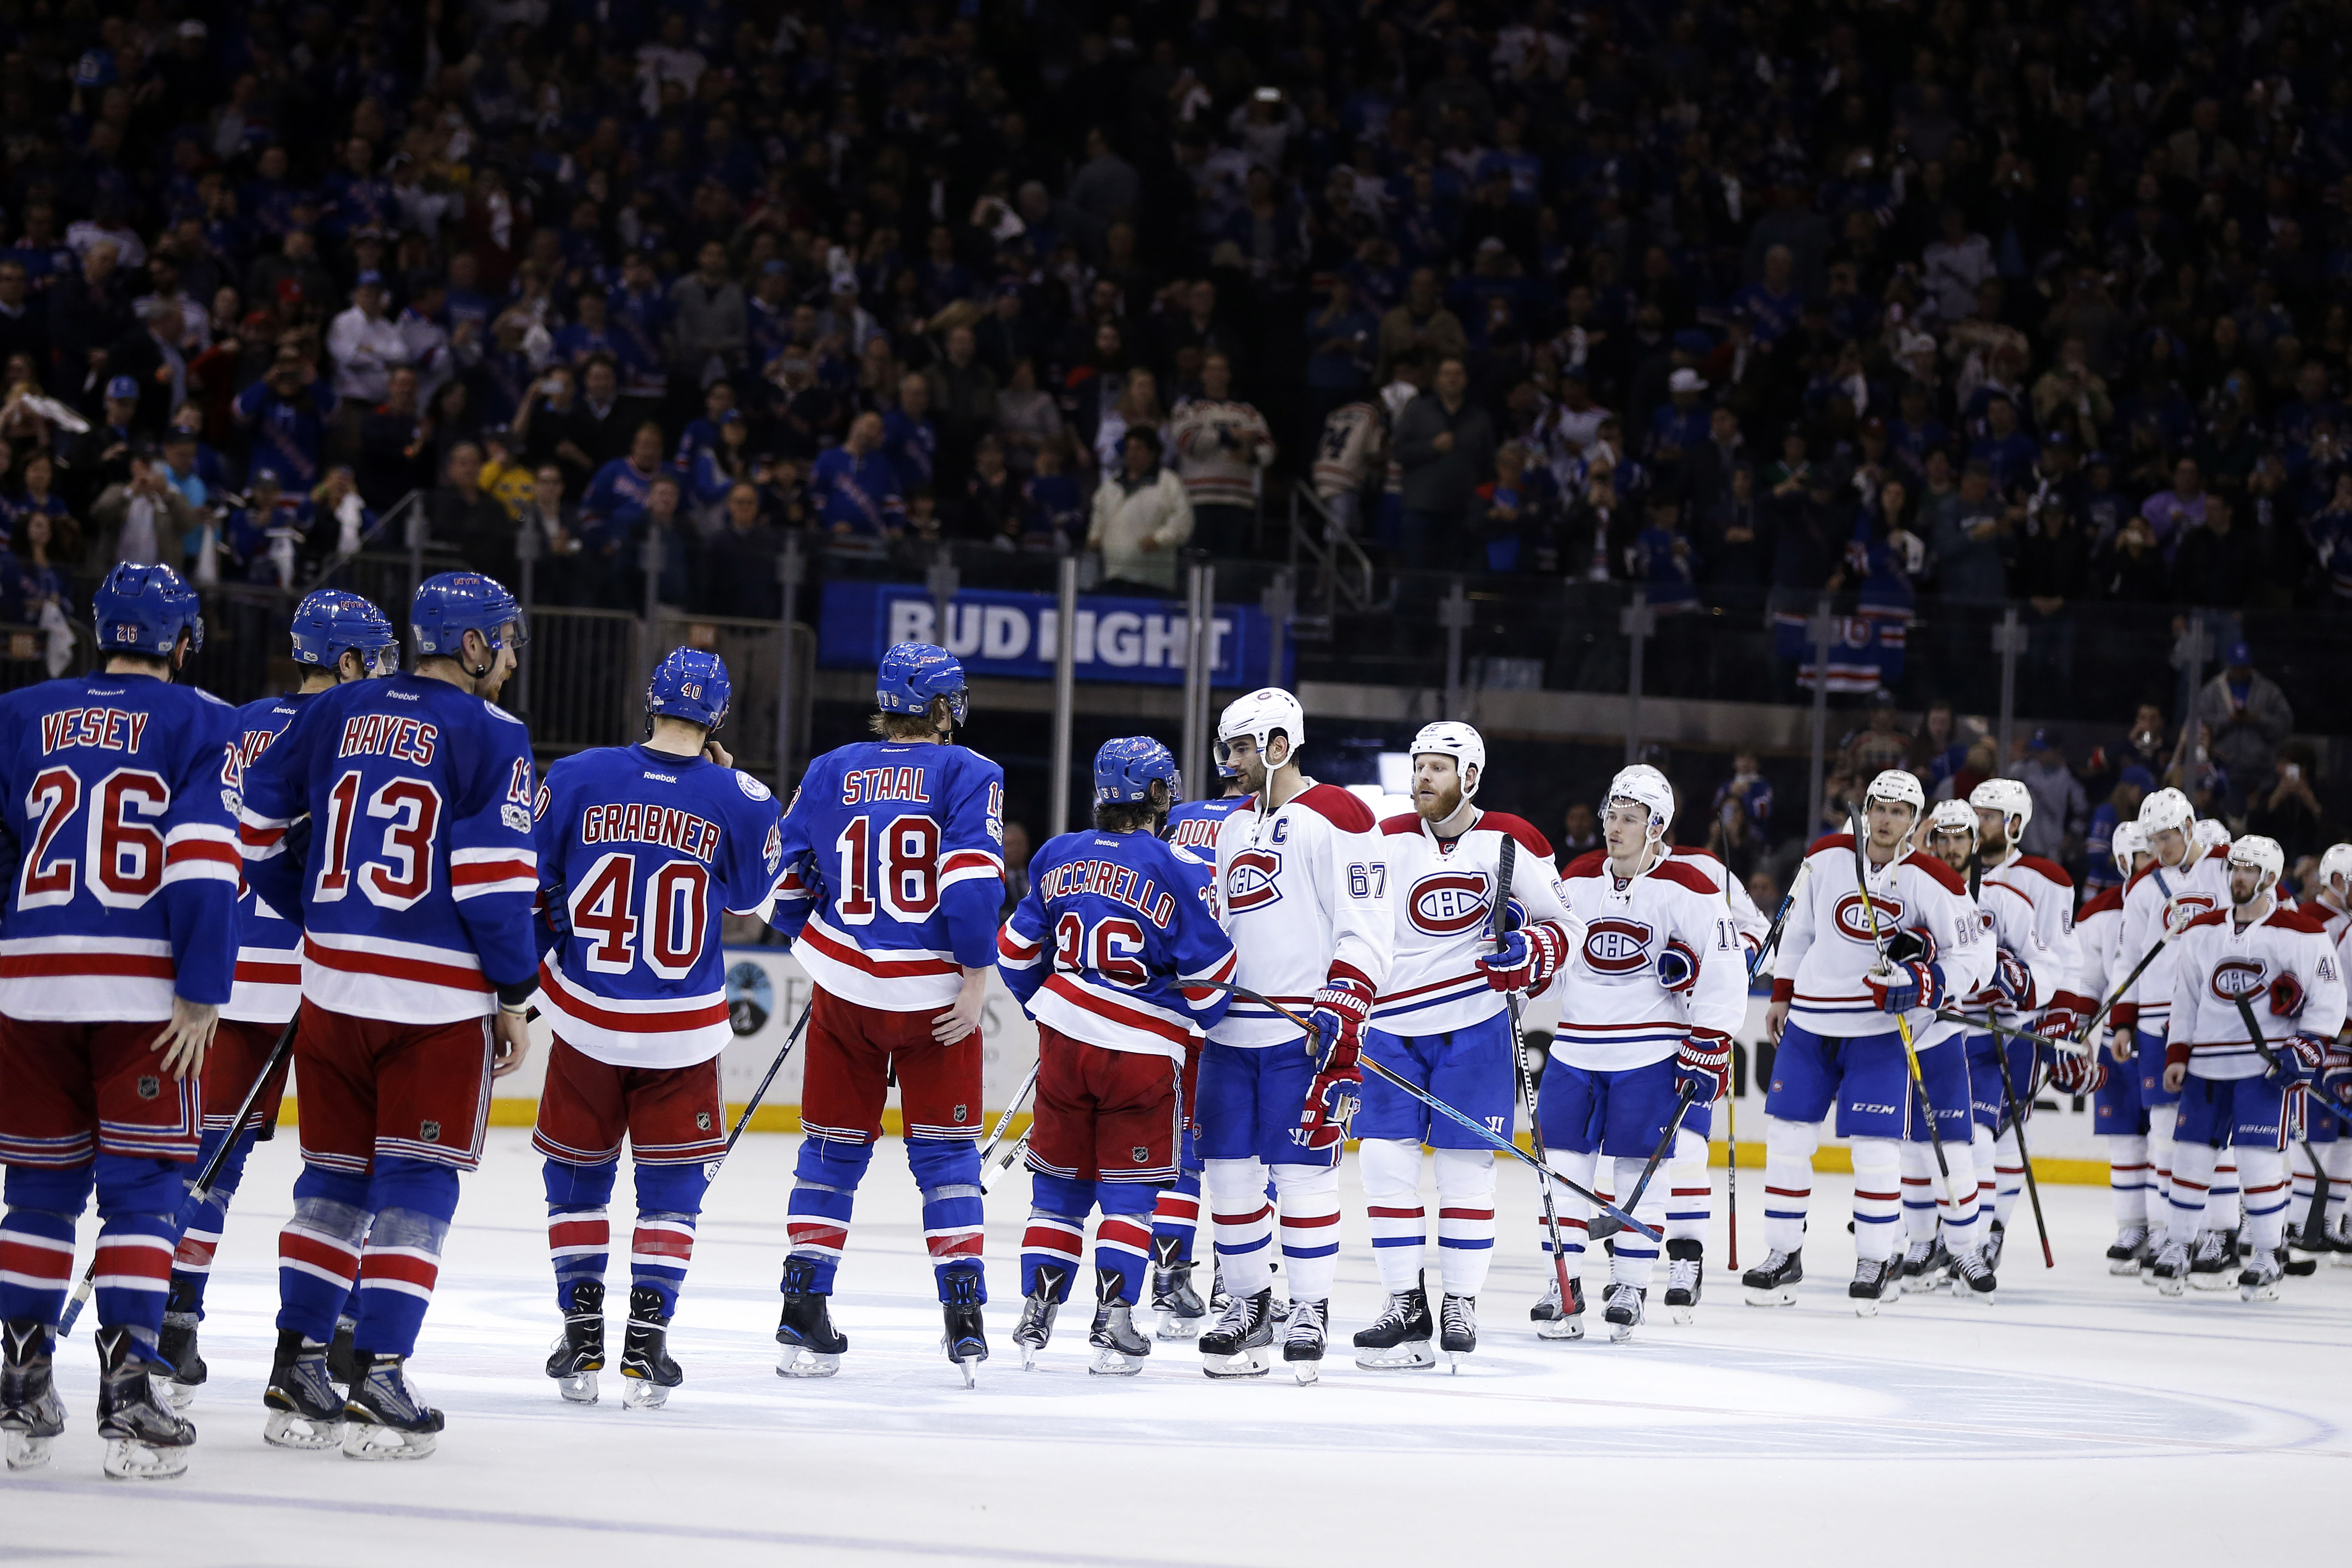 10026480-nhl-stanley-cup-playoffs-montreal-canadiens-at-new-york-rangers